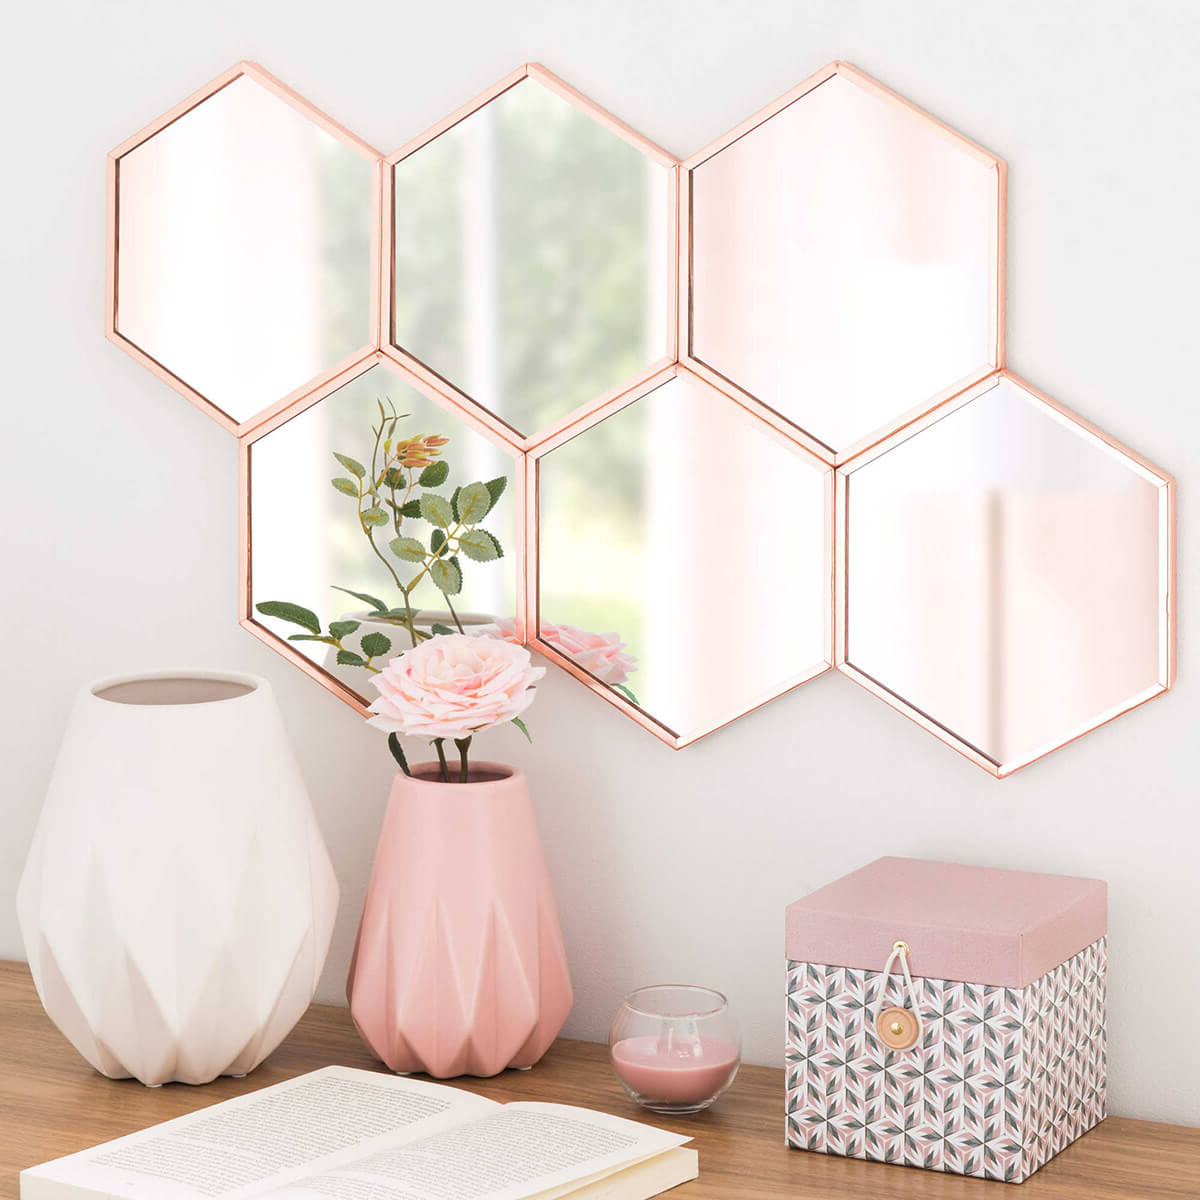 Recent 33 Best Mirror Decoration Ideas And Designs For 2019 With Regard To Pretty Wall Mirrors (Gallery 17 of 20)